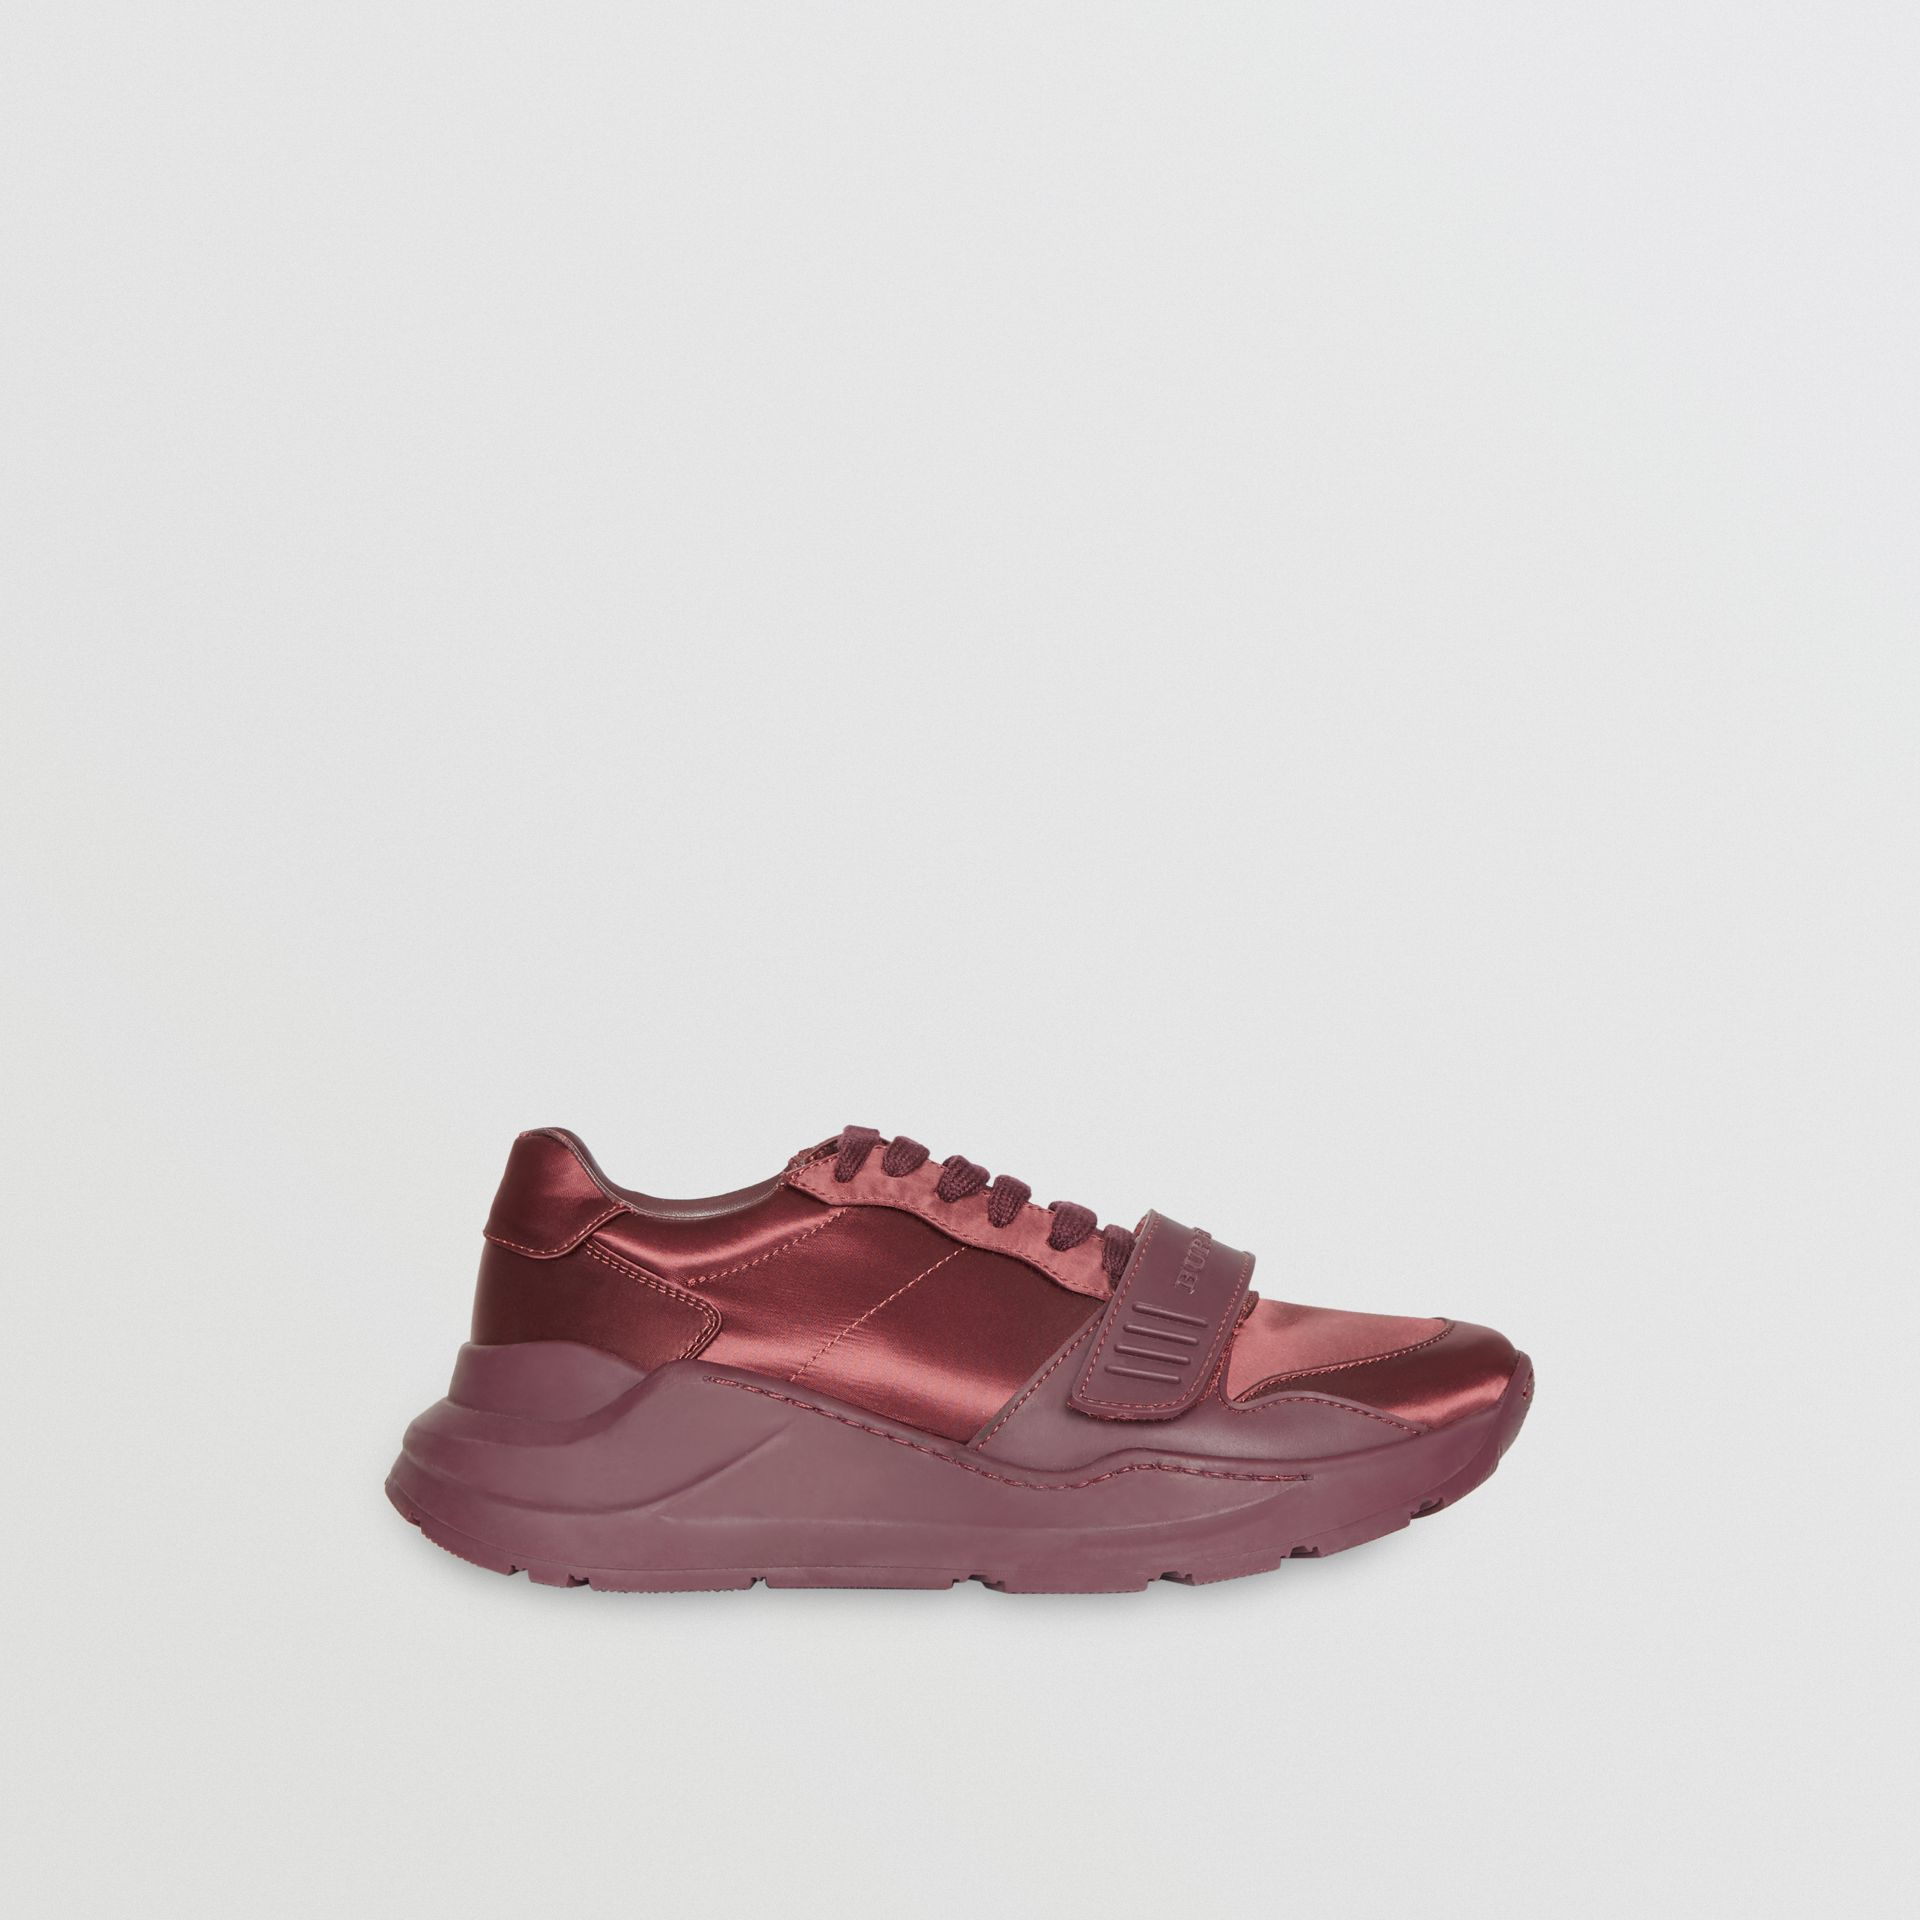 Satin Sneakers in Claret - Women | Burberry - gallery image 5